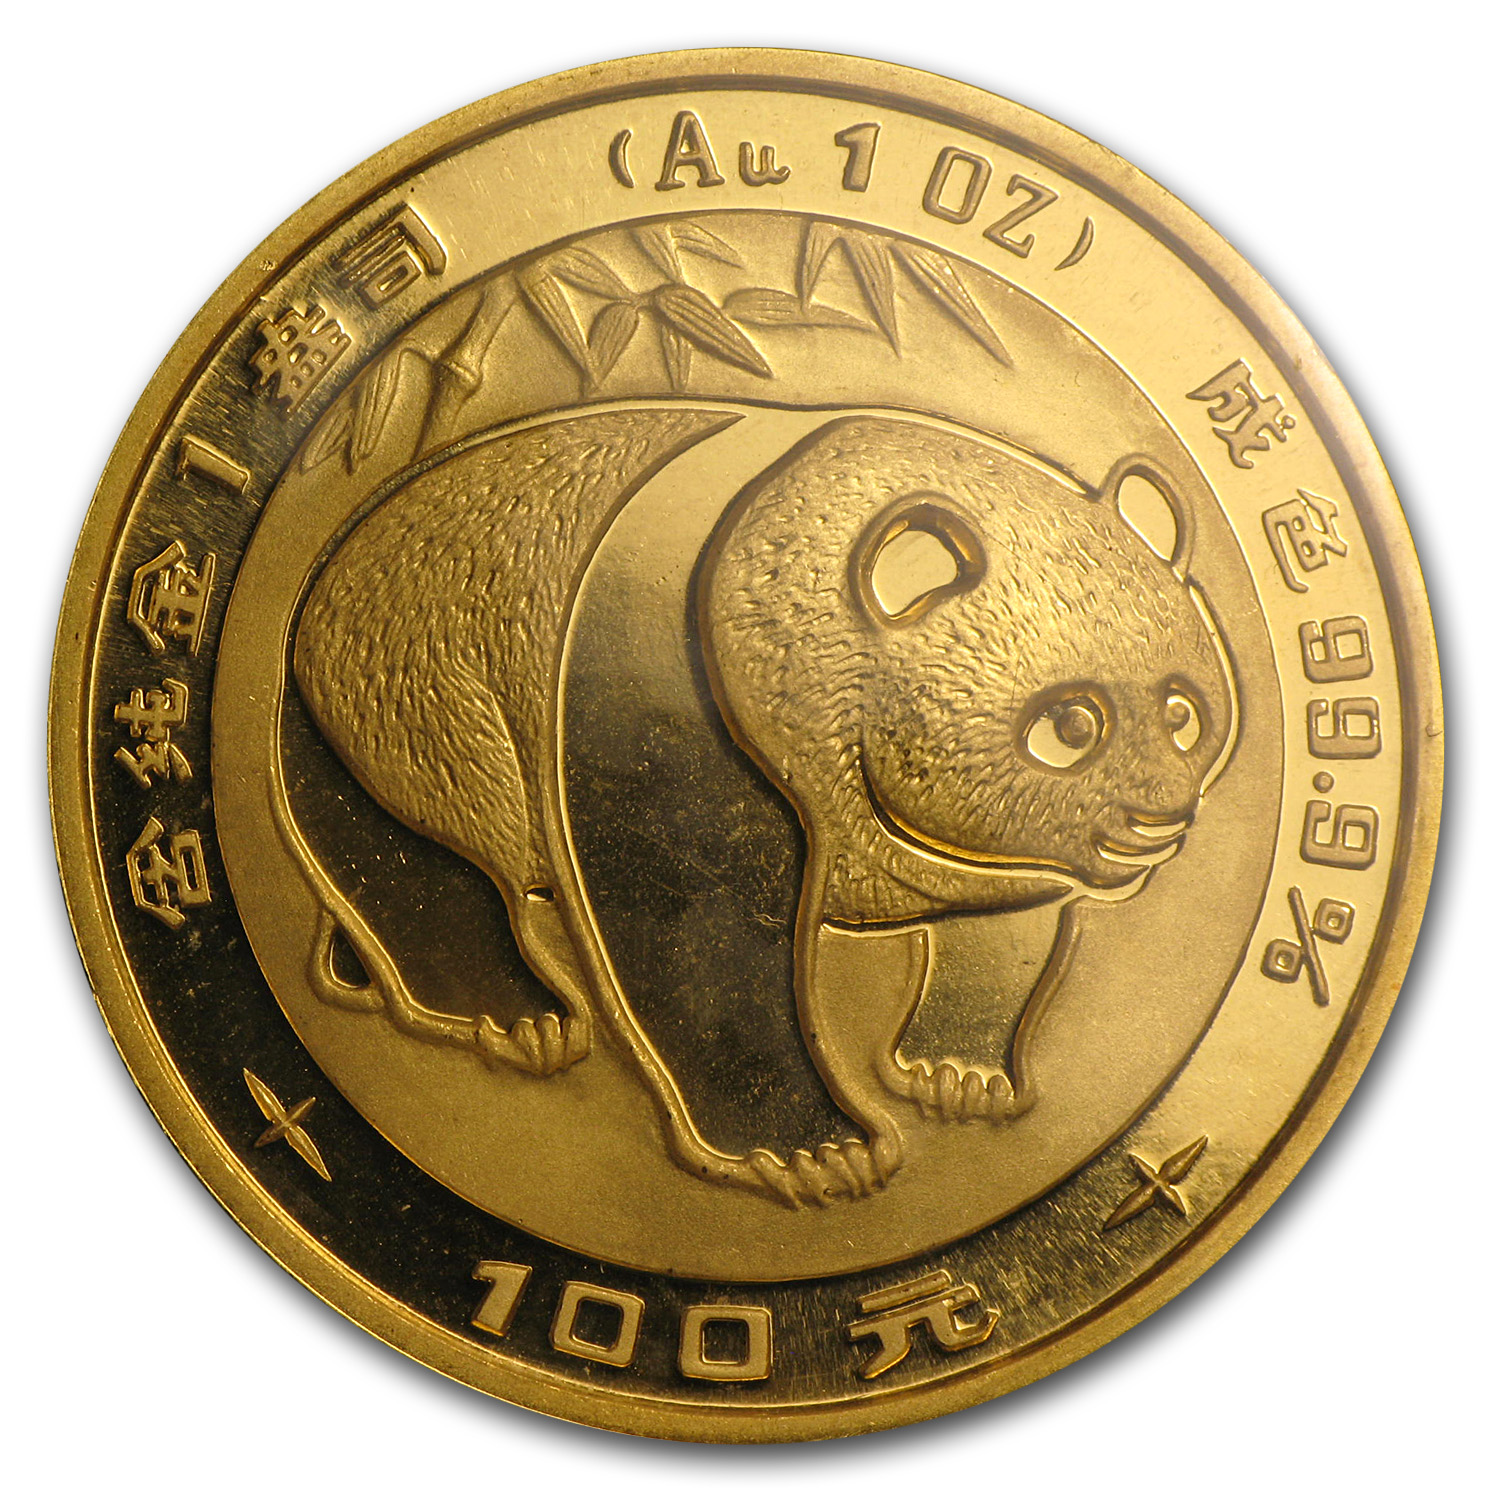 1983 China 1 oz Gold Panda BU (Sealed)